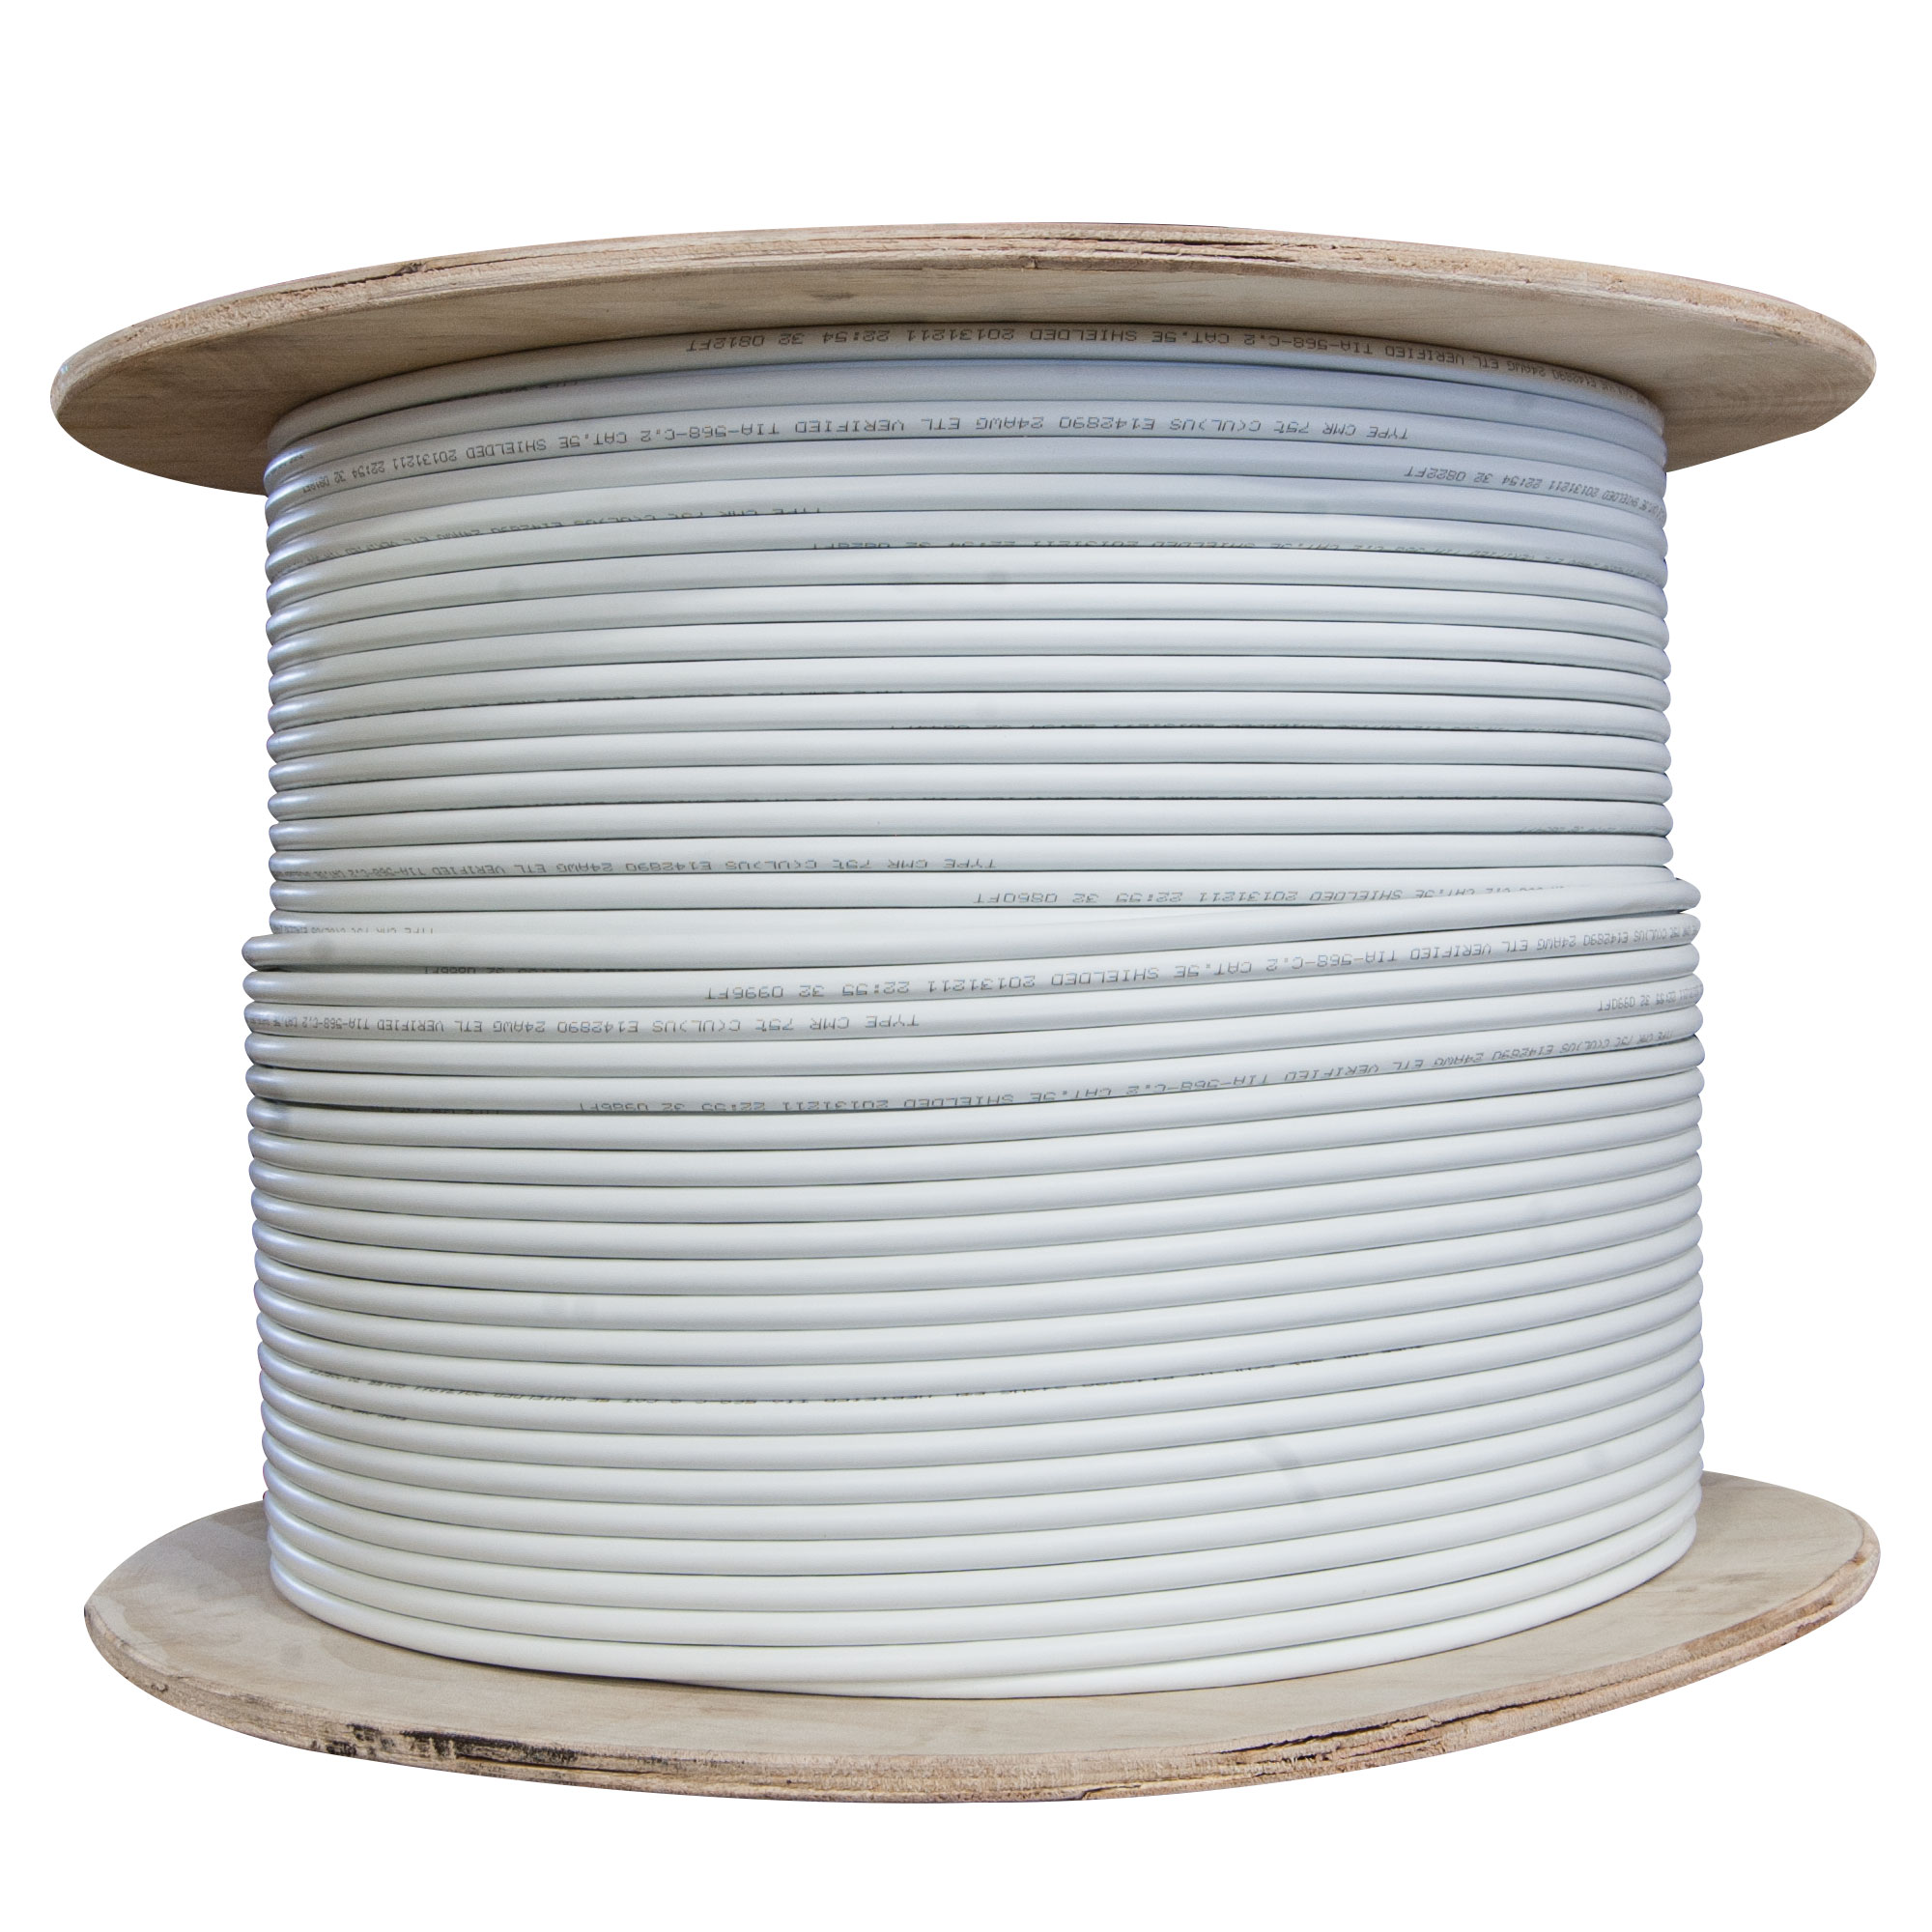 Shielded Cat6 Wiring Diagram Trusted Diagrams Cat 6 Network 1000ft White Ethernet Spool Solid Bulk Category Cable